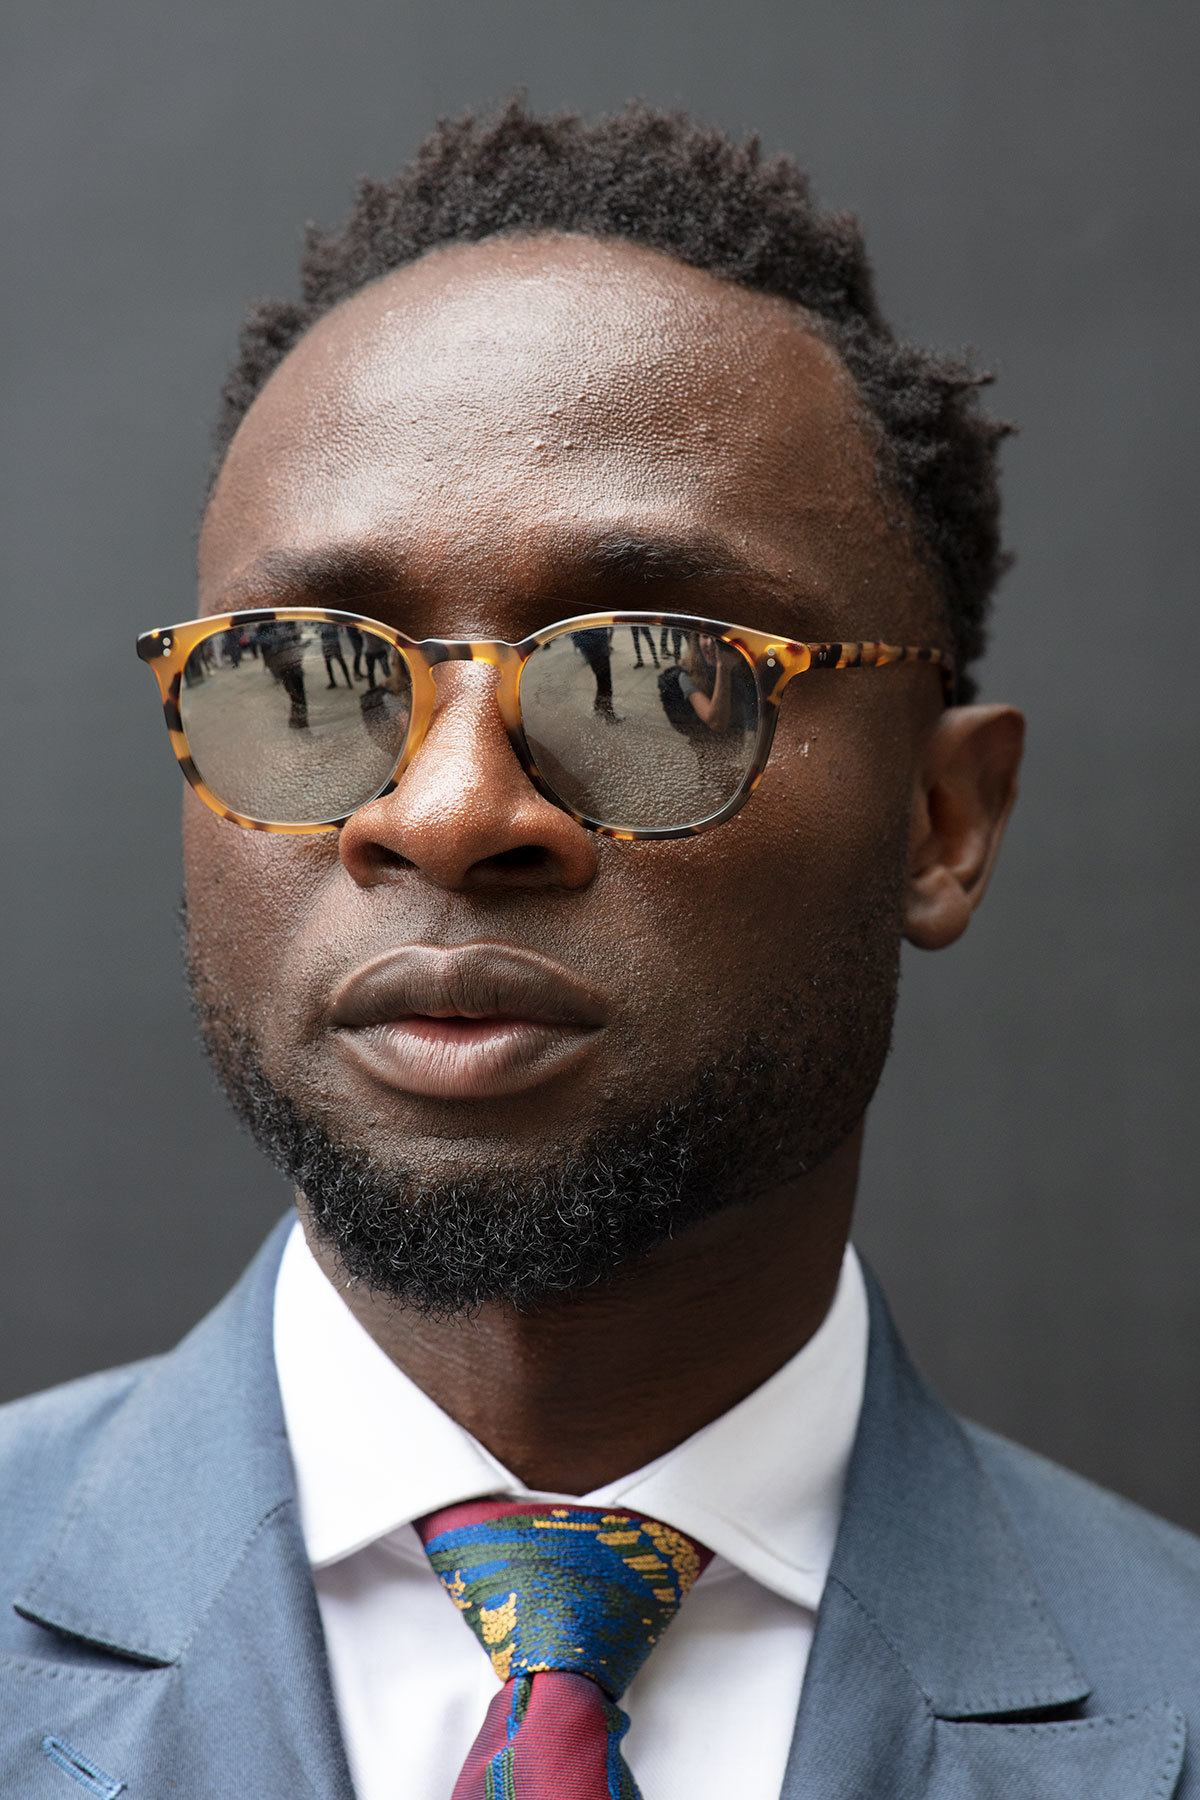 Best hair styling products for men: Close up shot of a man with short dark brown afro hair, wearing sunglasses with a suit and posing outside.